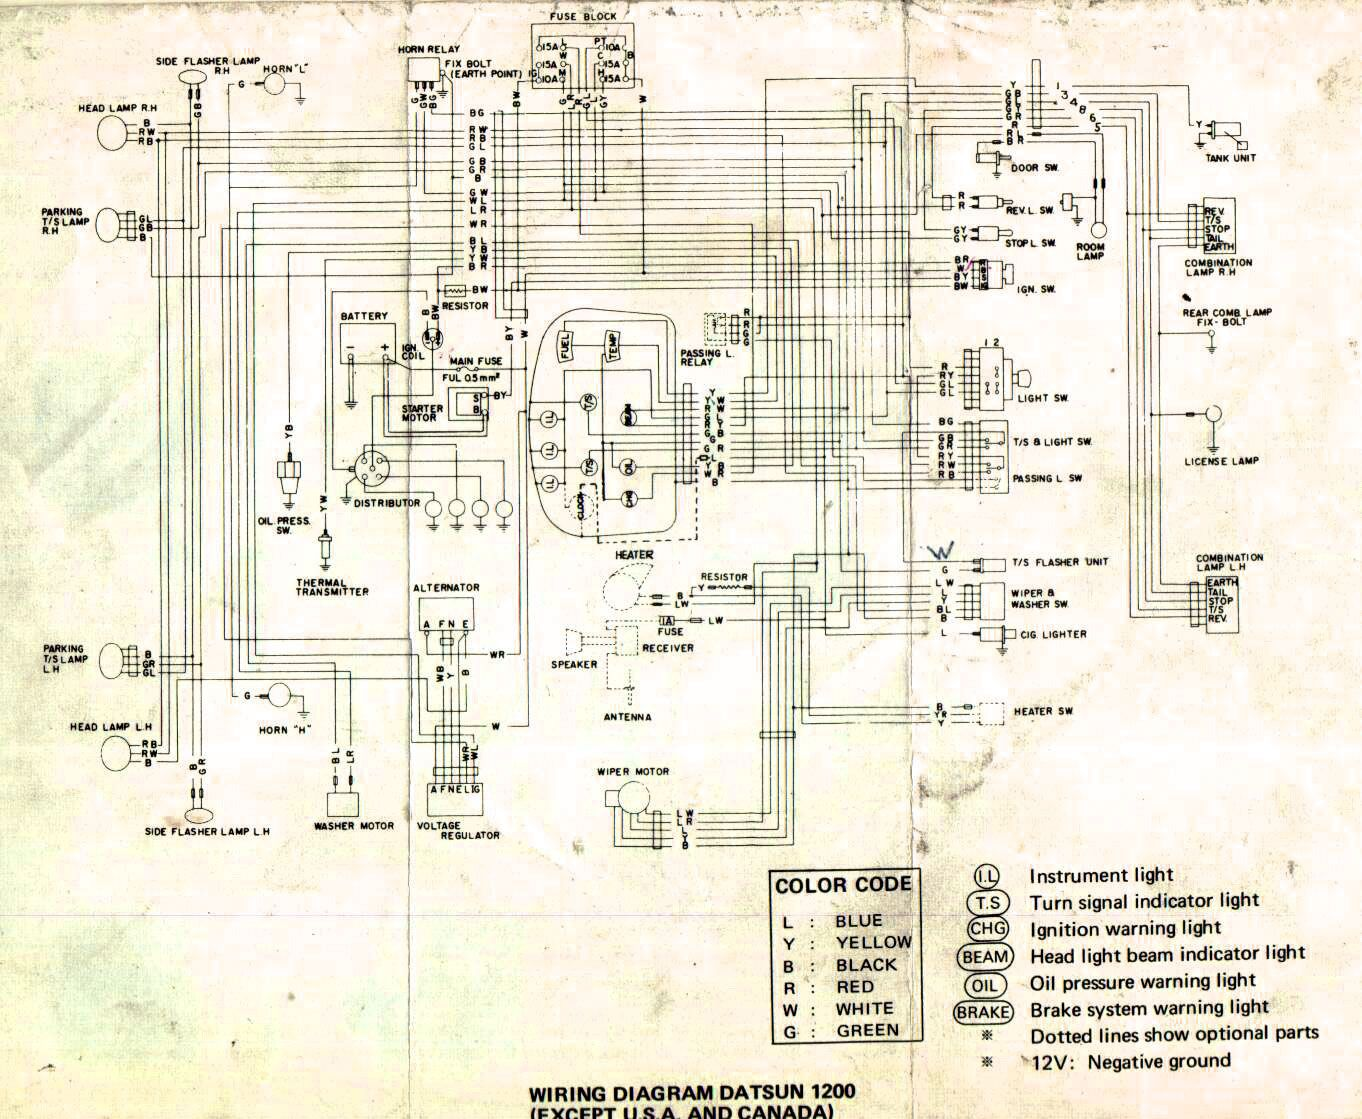 small resolution of wiring diagram for nissan 1400 bakkie 8